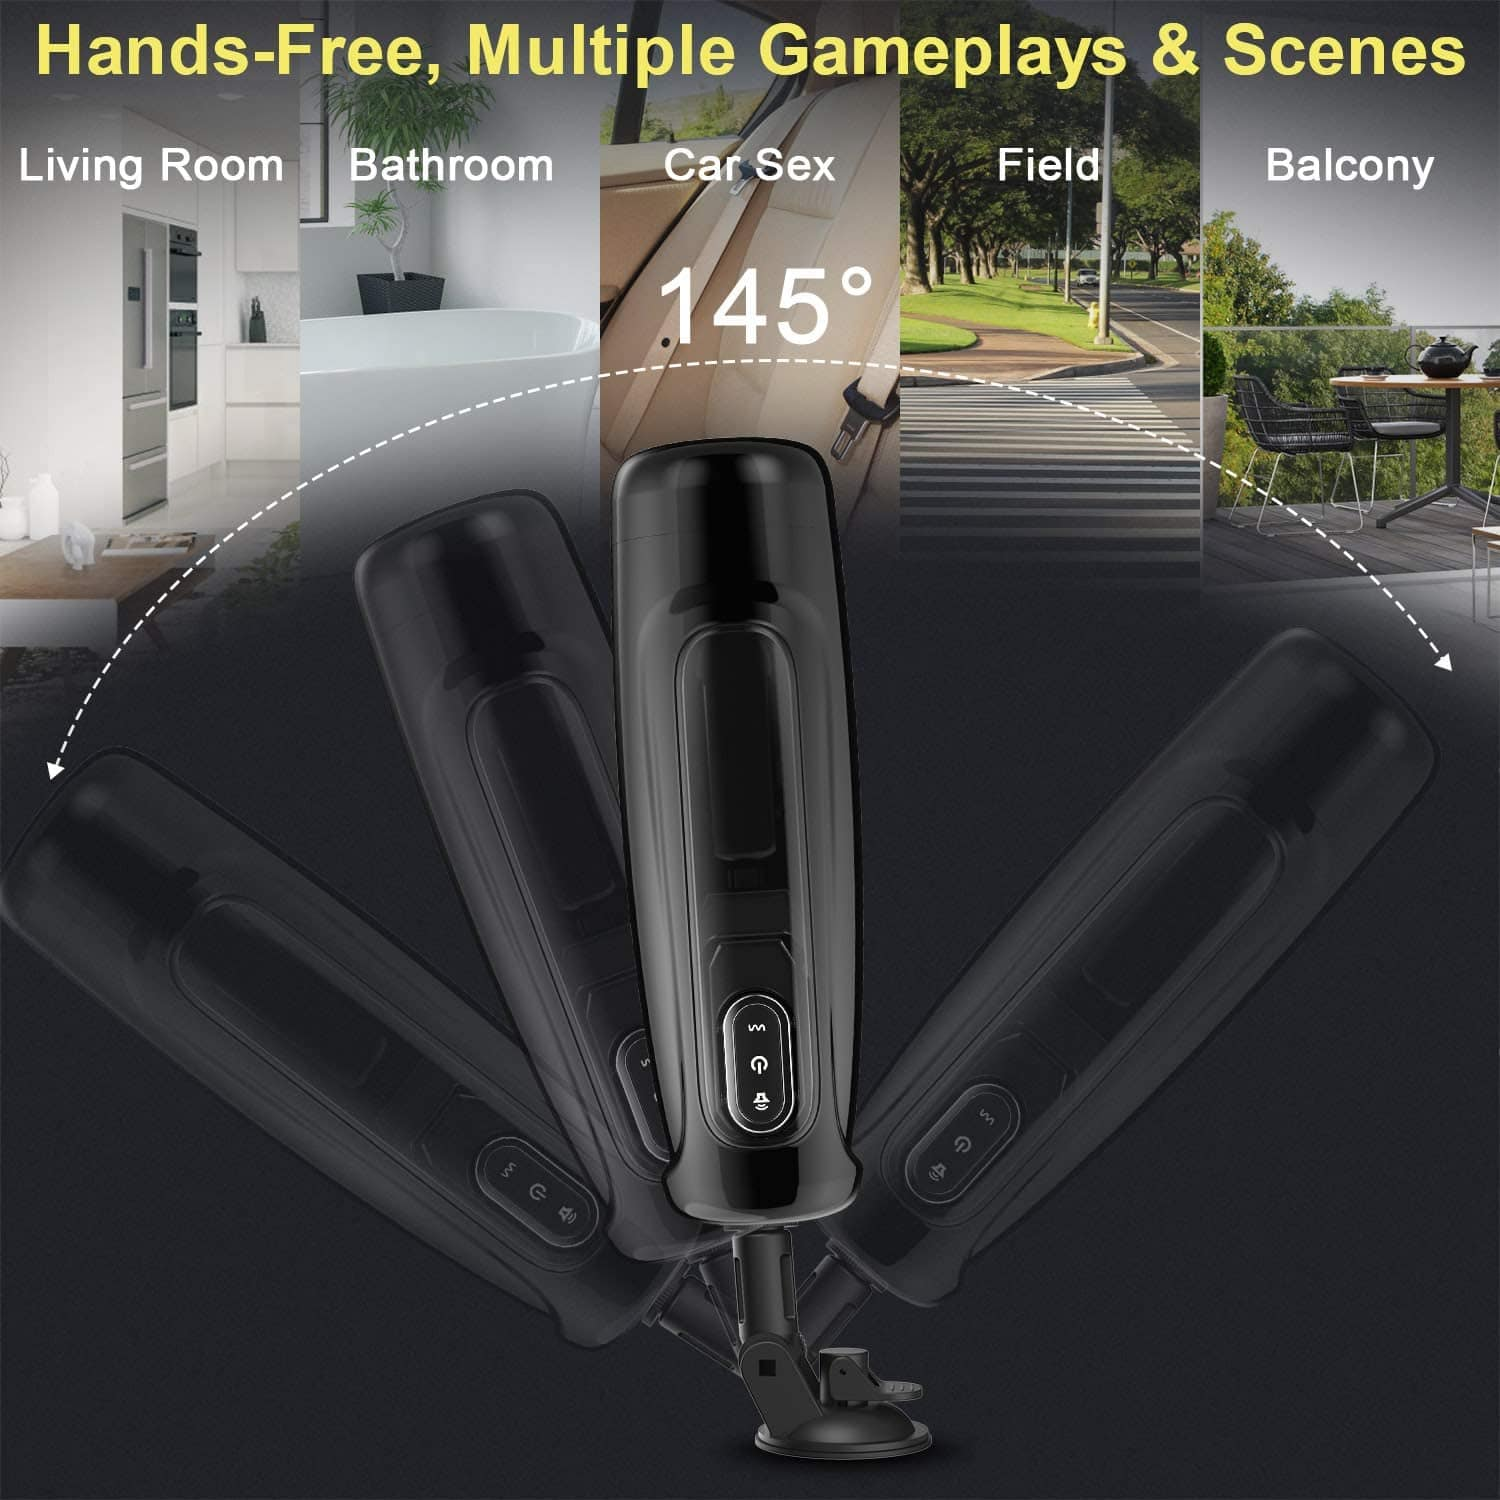 Male Masturbator-10 Rotating,Trusting Models,3 Moans Interaction 3 in 1 Adjustable Hands-Free Automatic Men Masturbation Cup Stroker